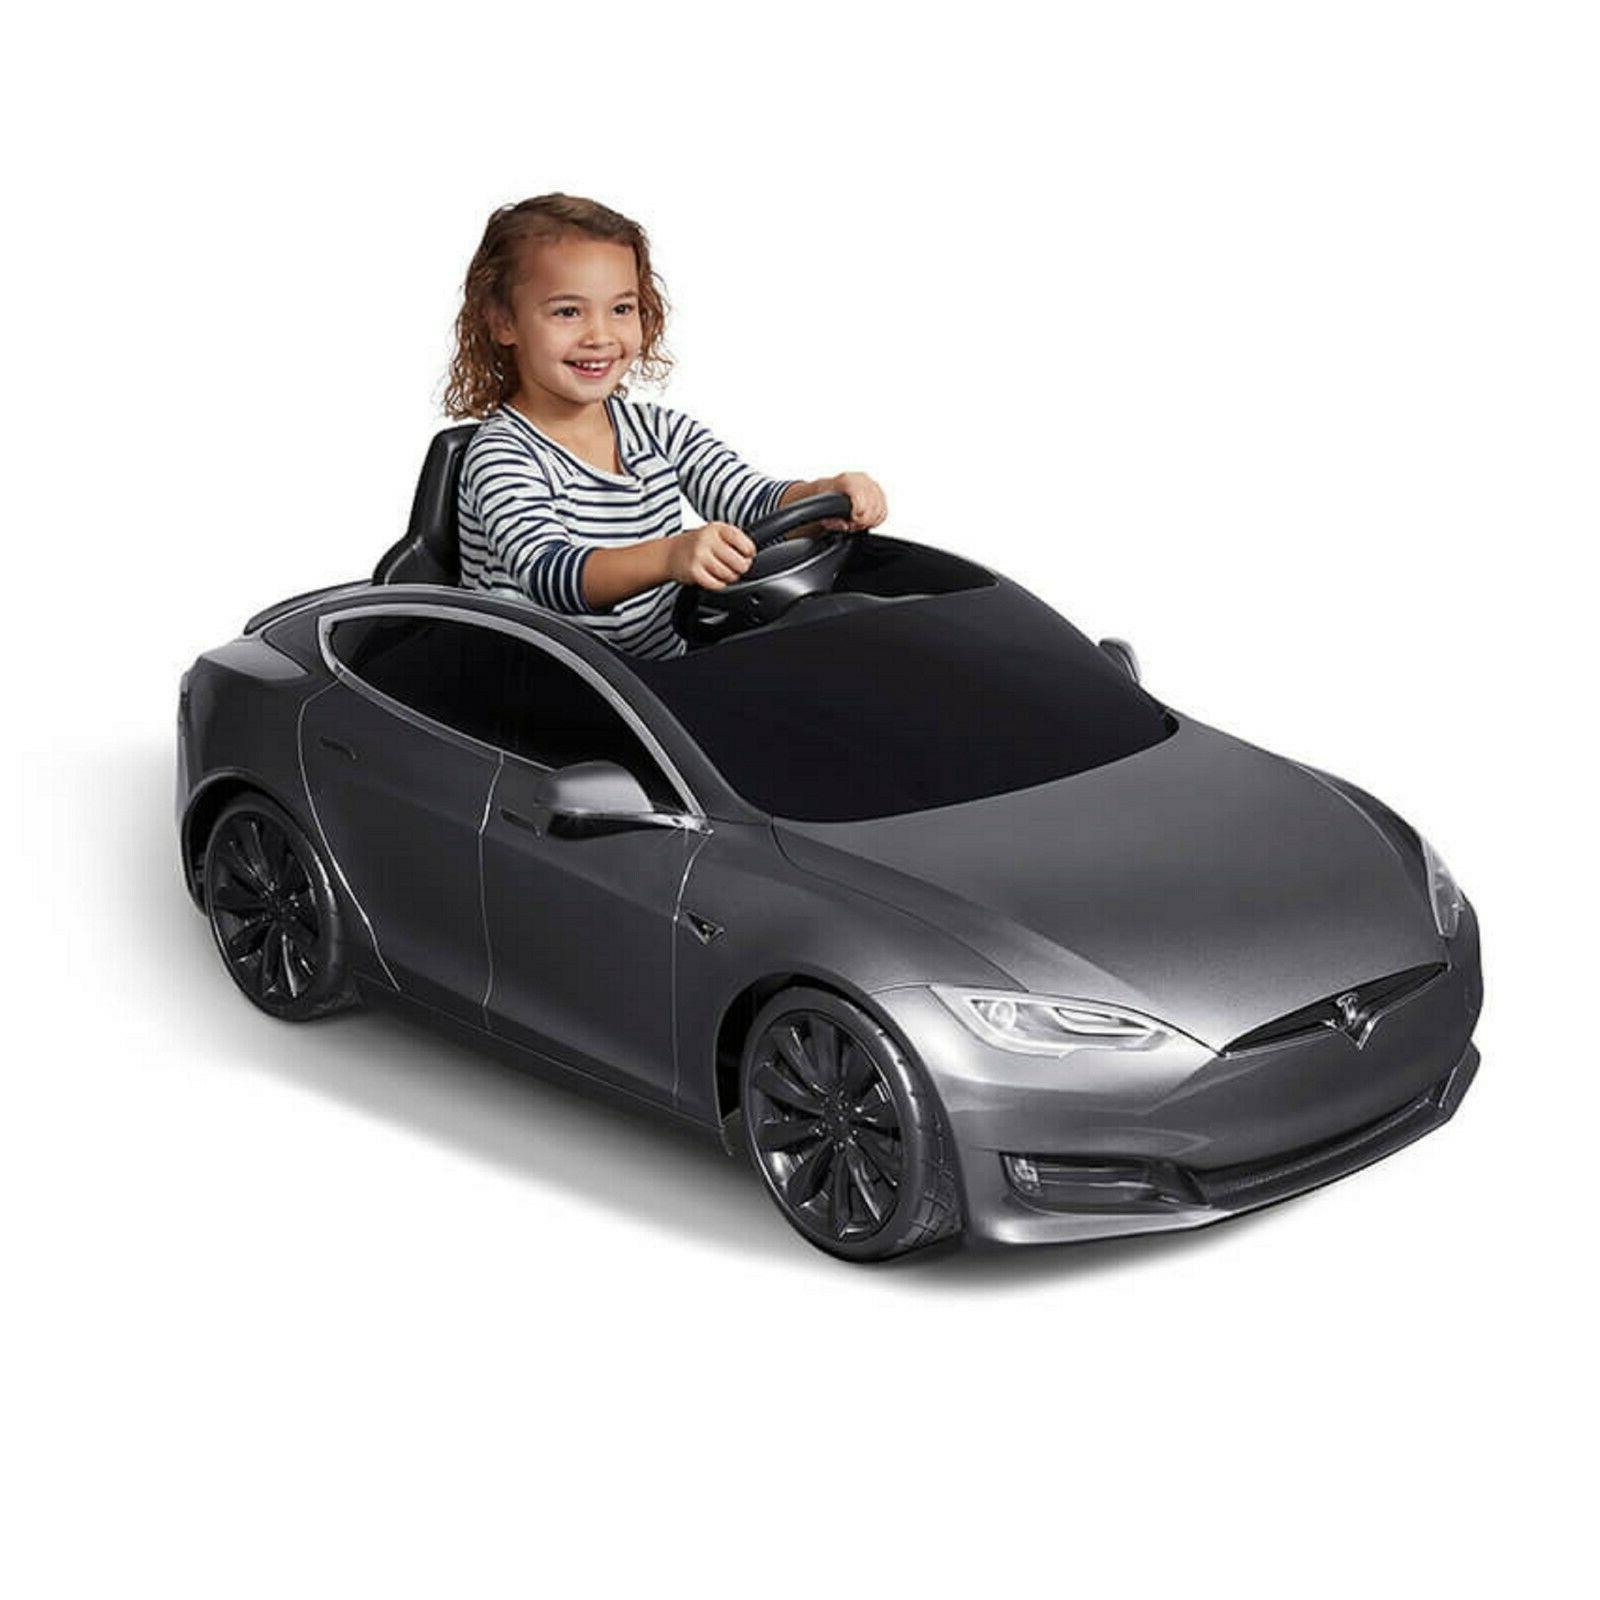 Riding cars mini model S, Include Battery, Red, Blu